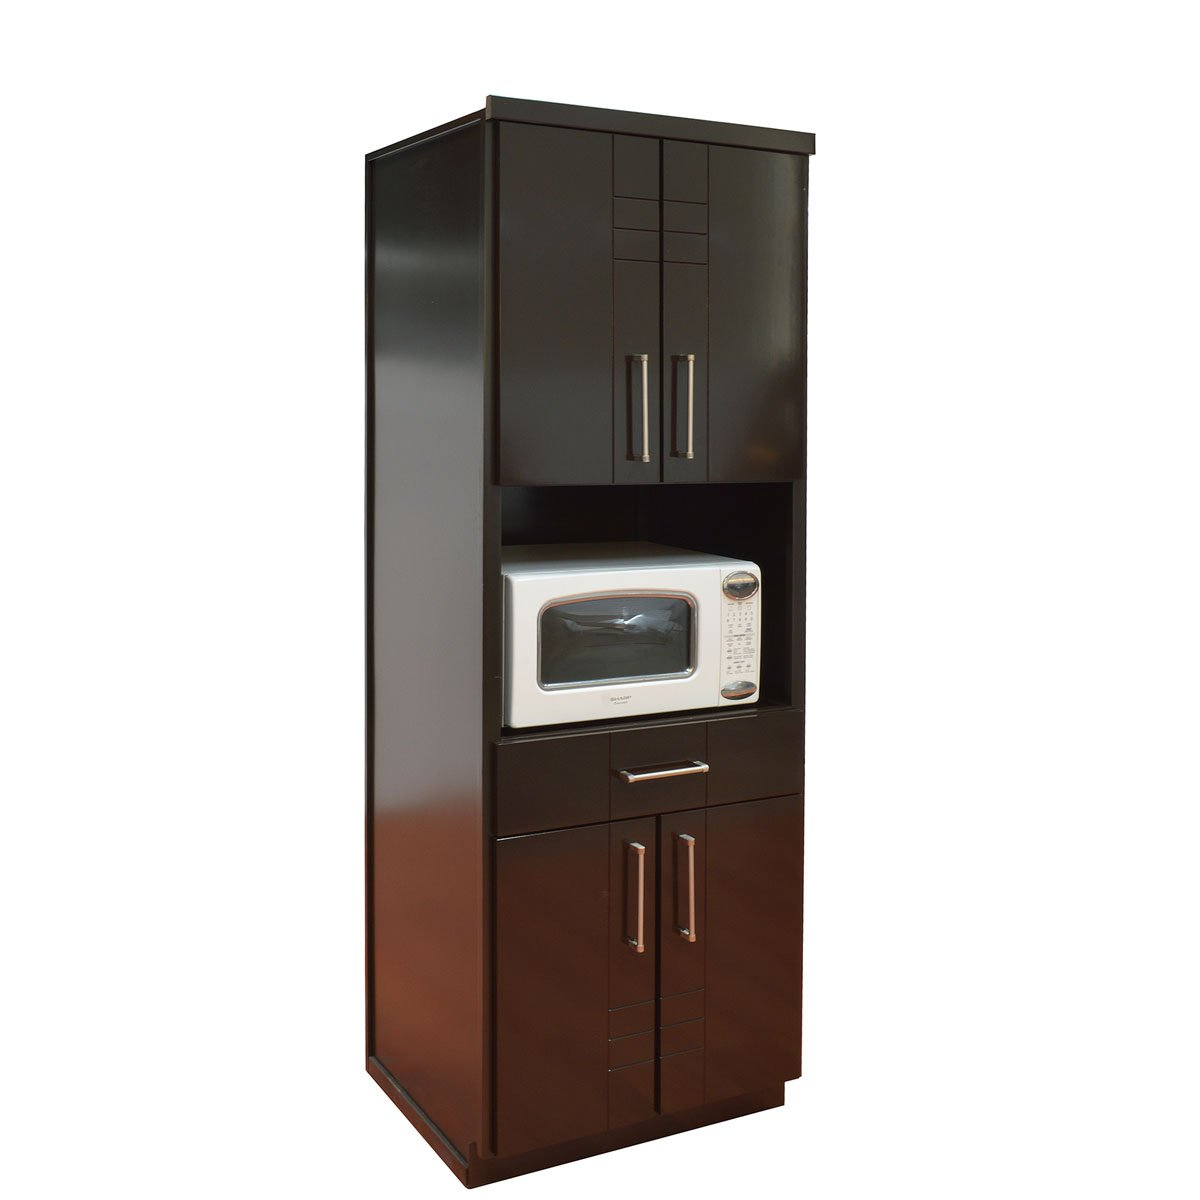 Despensero nigeria sears com mx me entiende for Muebles para despensa cocina